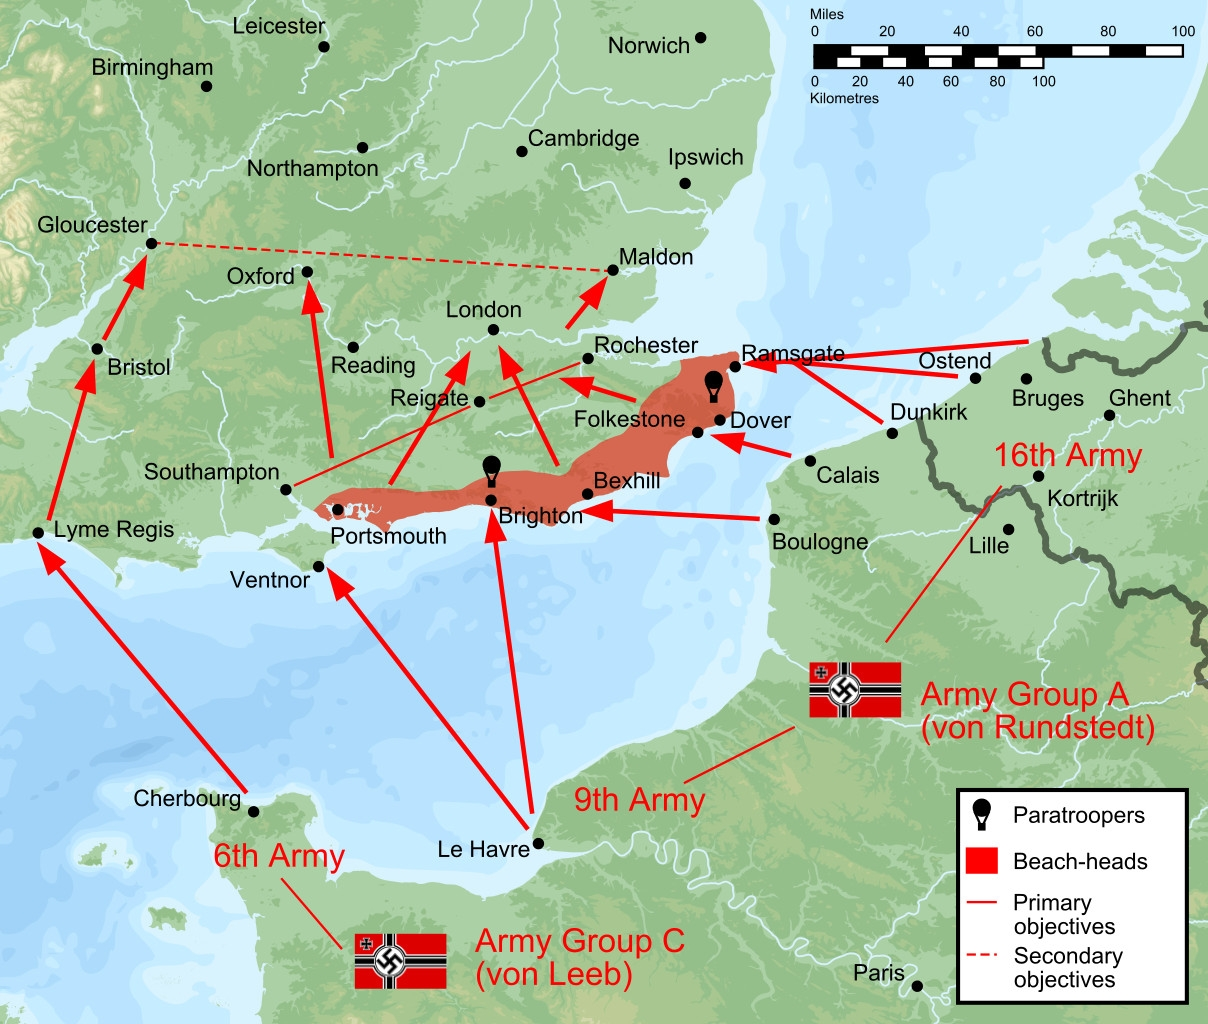 42 Maps That Explain World War Ii - Vox in Map Of Germany After Ww2